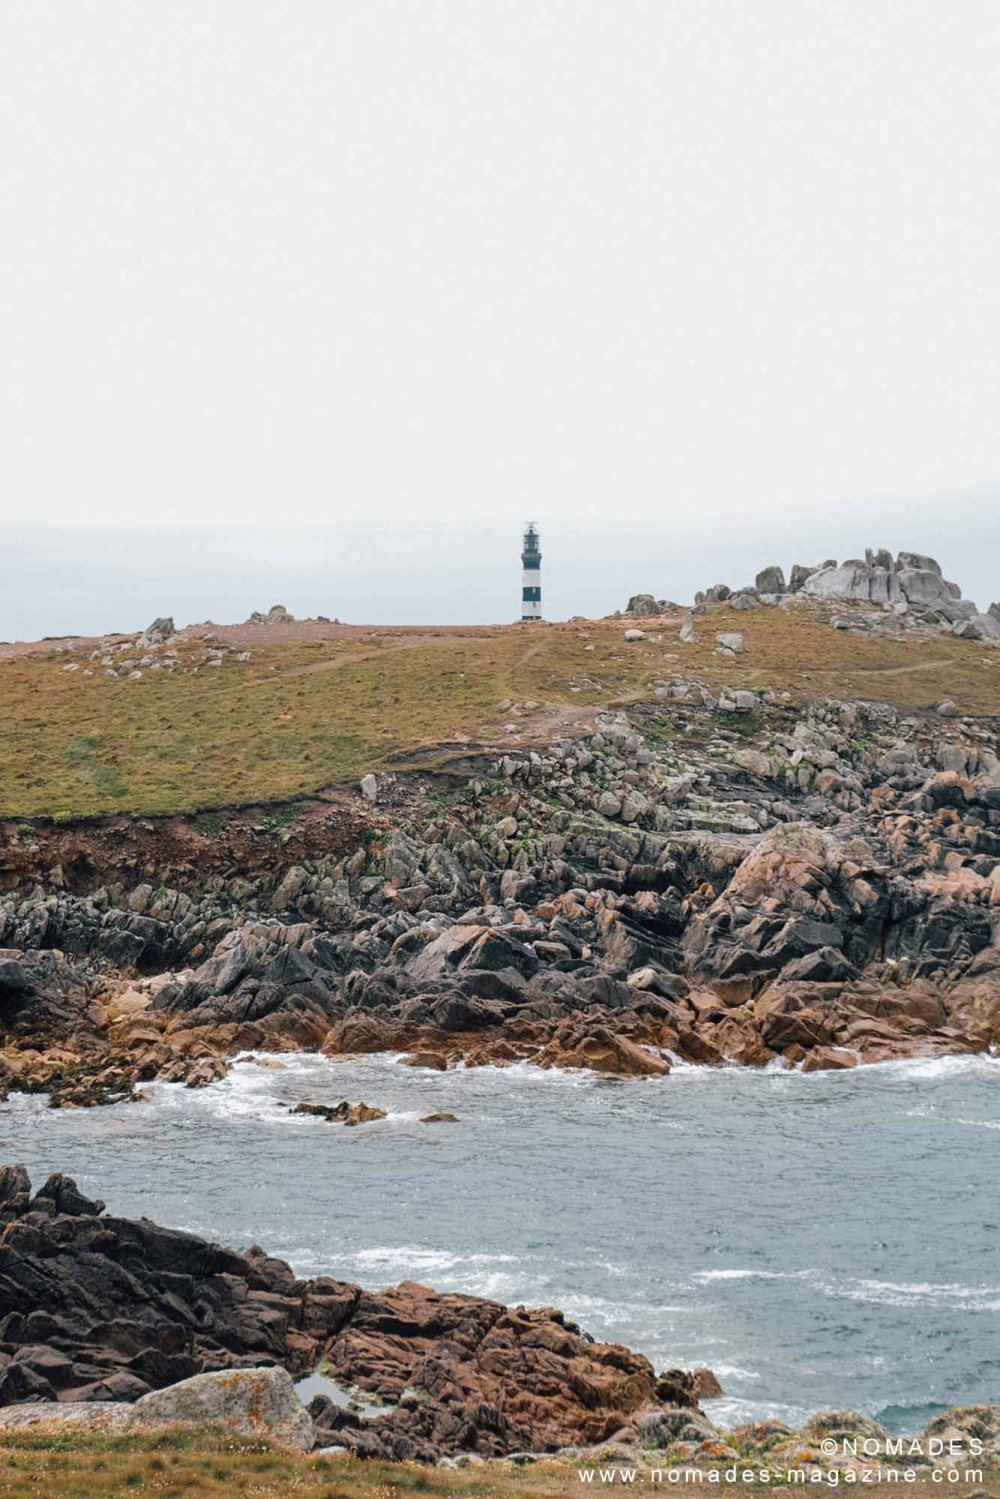 ouessant-by-nomades-4